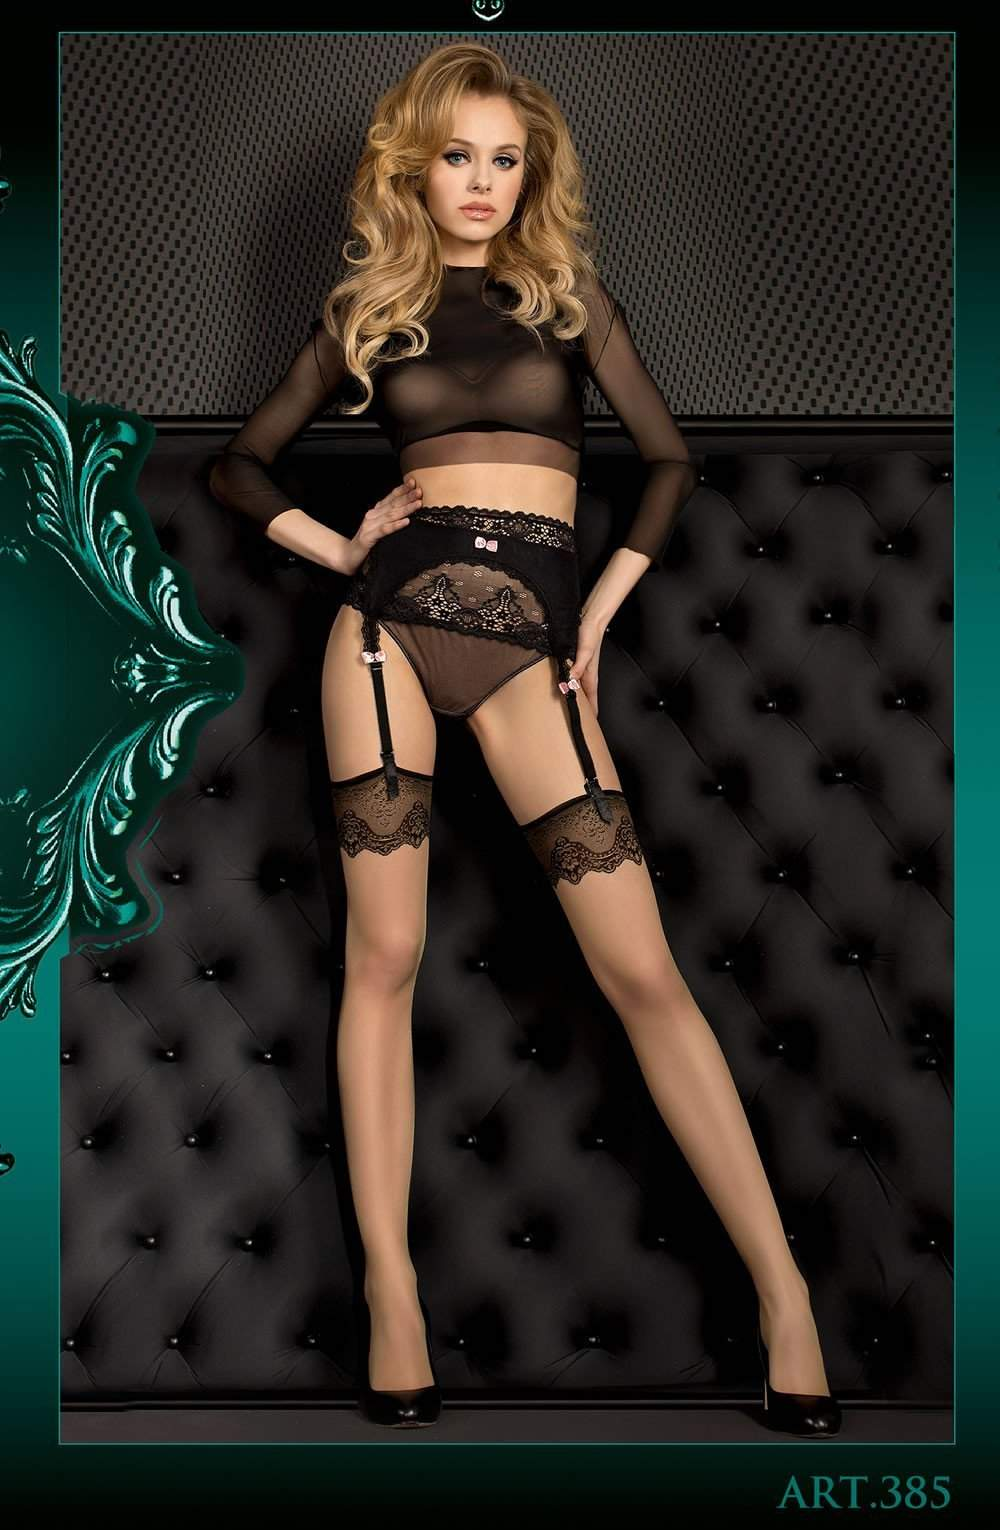 Ballerina 385 Stockings Skin - Ballerina - Katys Boutique Lingerie USA